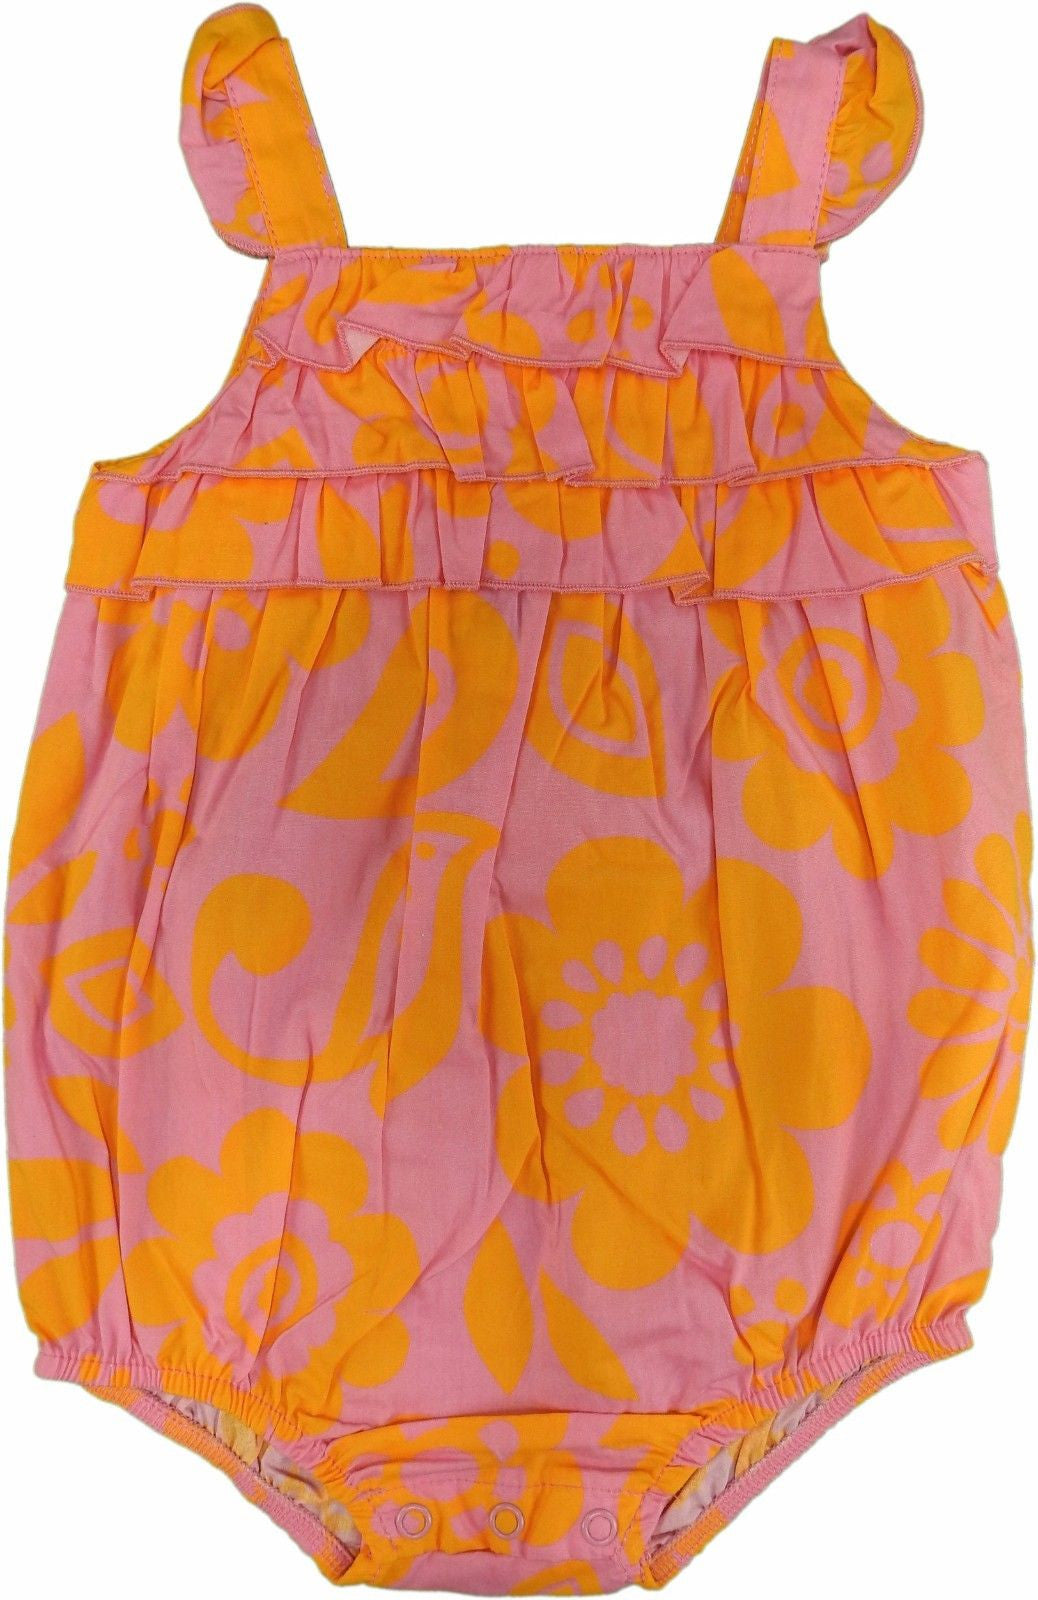 Carter's Baby Girls Everyday Easy 1-Piece Romper, Floral Pink/Orange